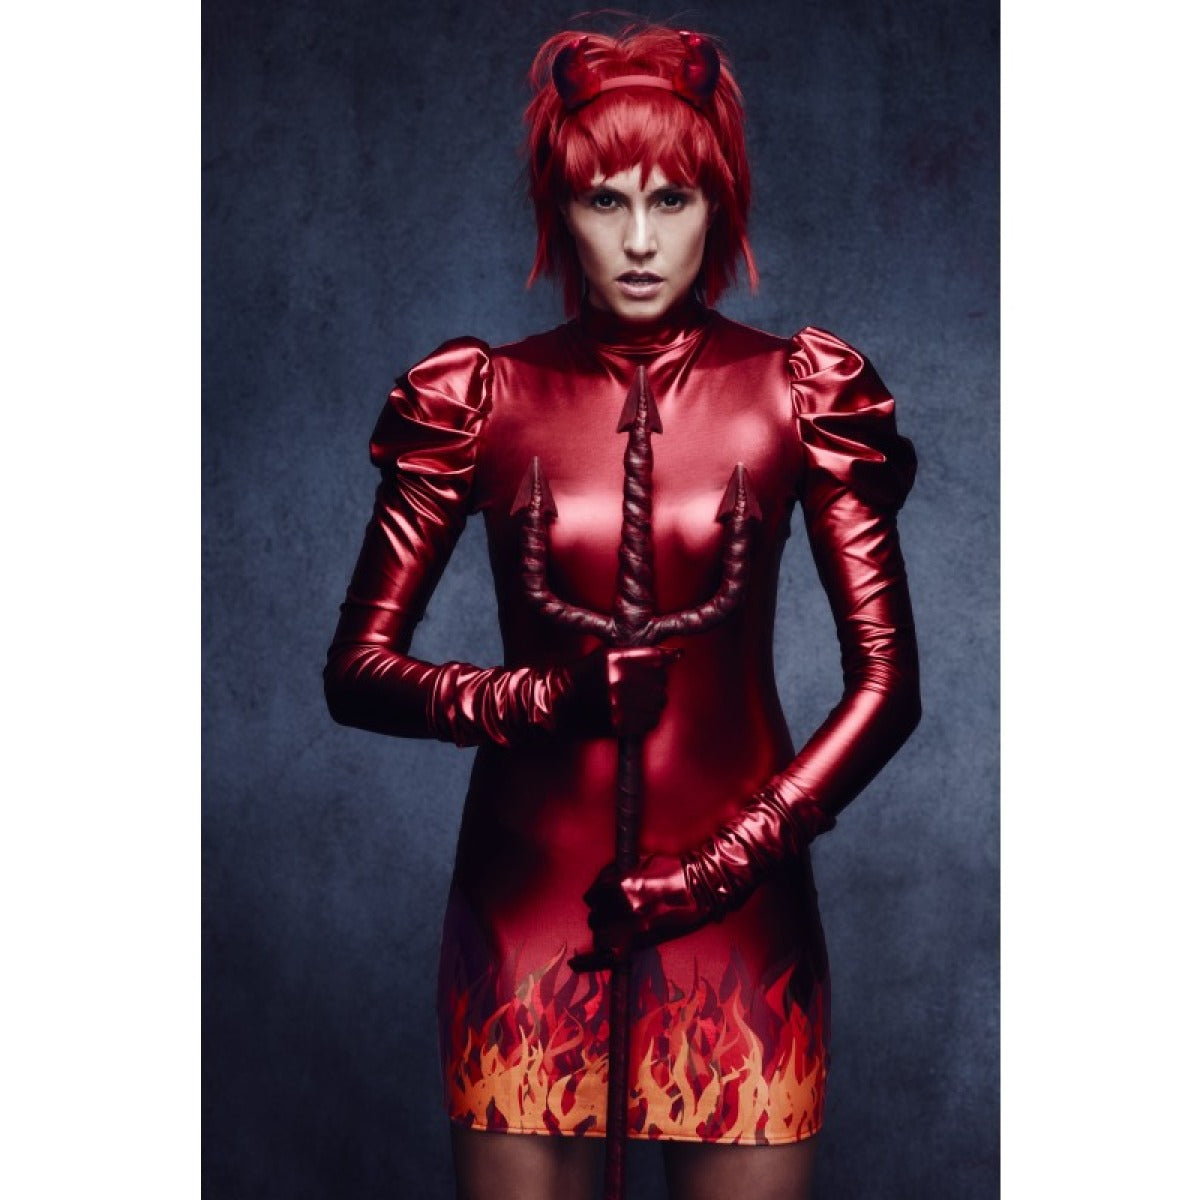 Fever Devil Women's Costume with horns Wet Look Fabric